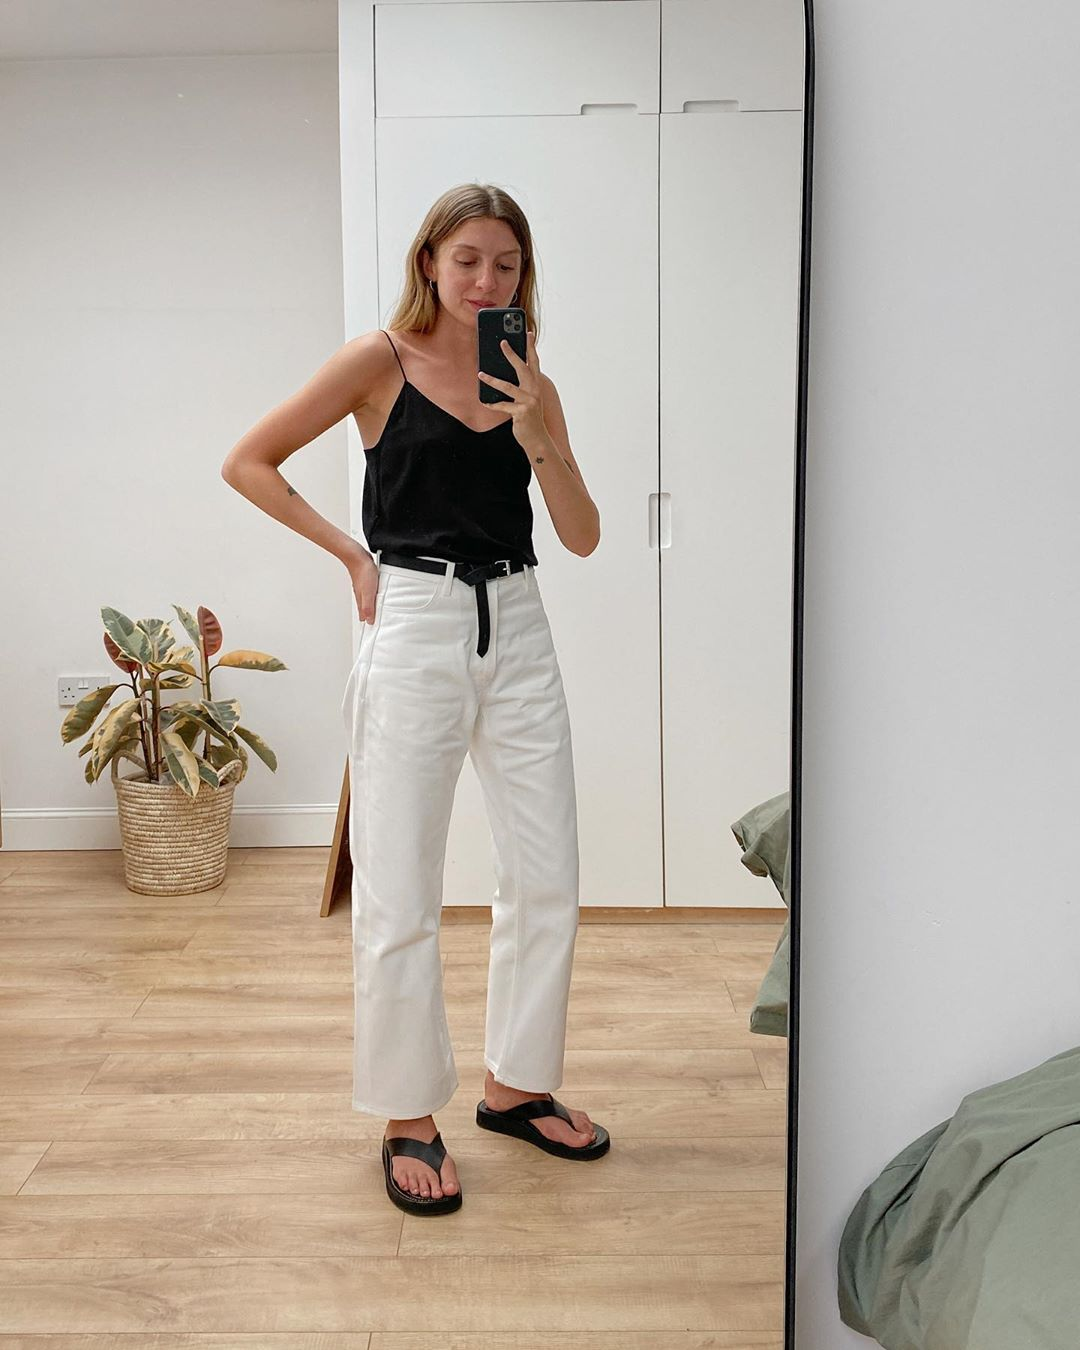 Casual-Chic Outfit Idea — Brittany Bathgate in a black cami, white jeans, and black flip-flops